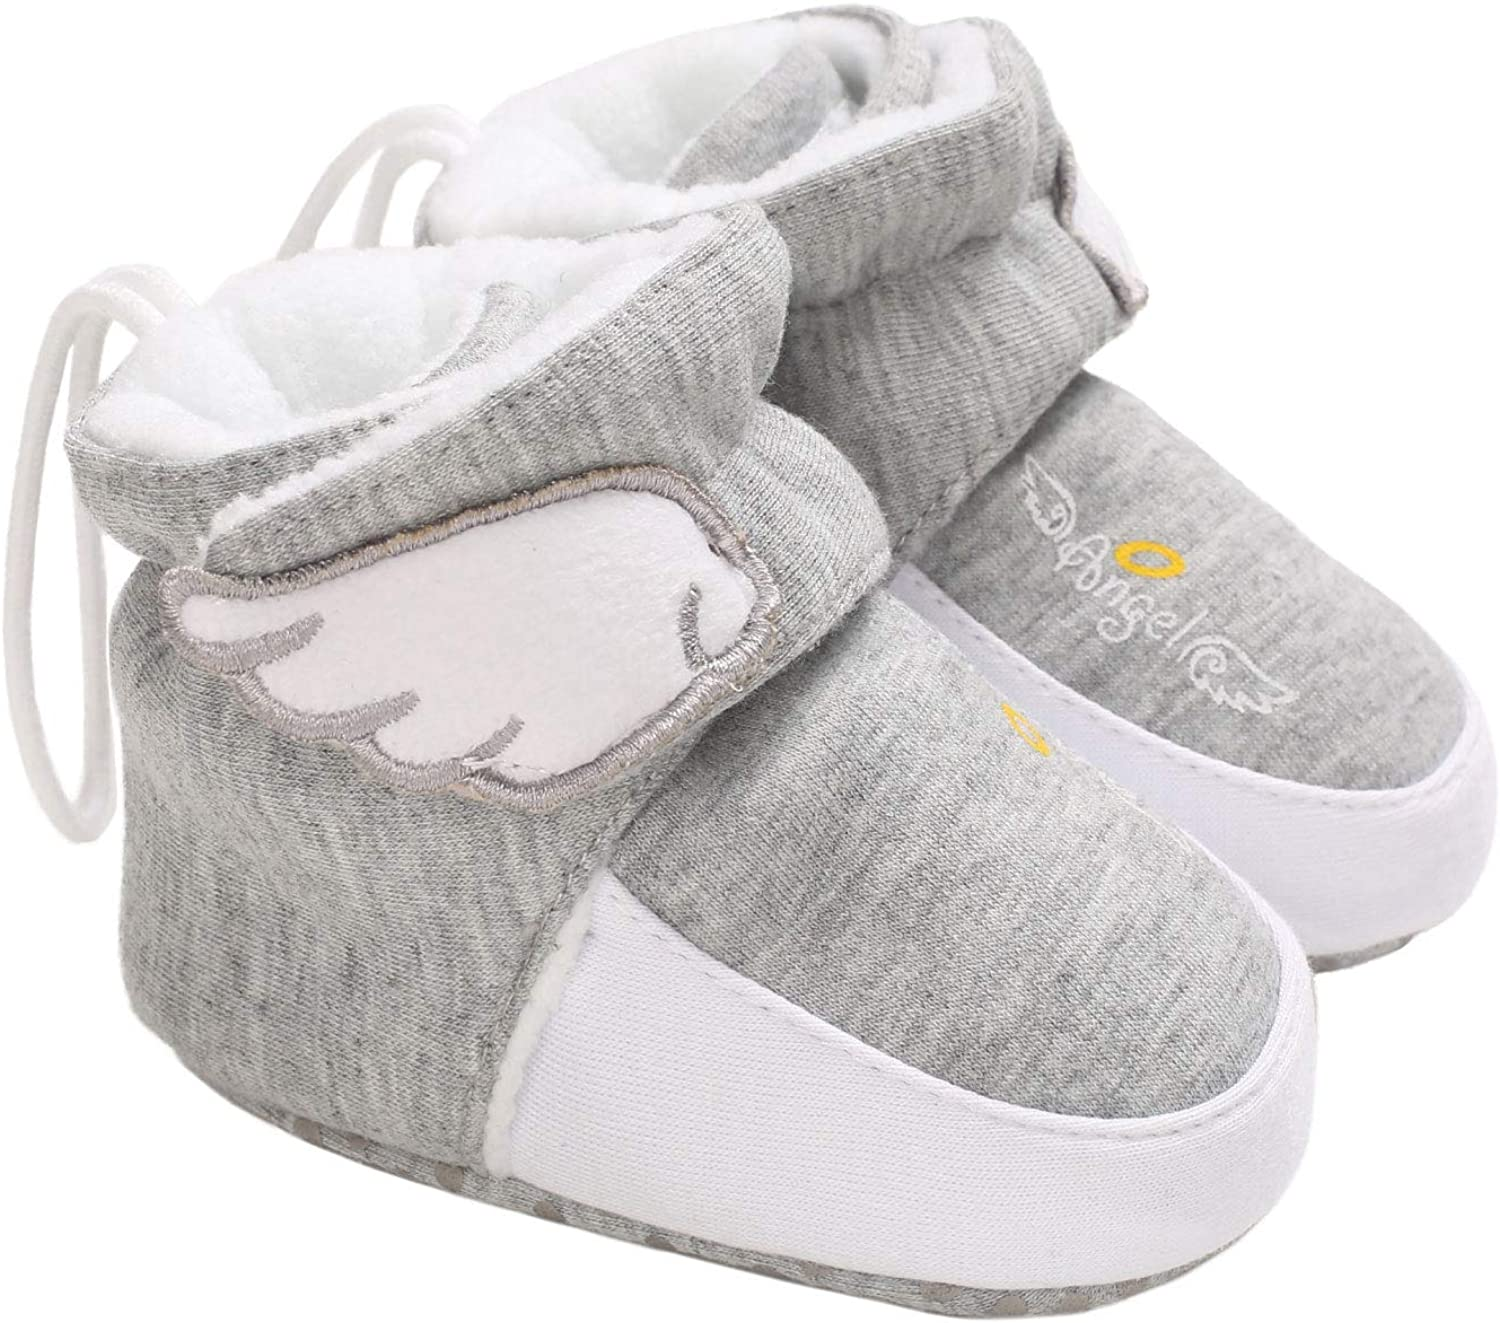 Baby Shoes Baby Cotton Bootie Baby Girl Boy Slippers